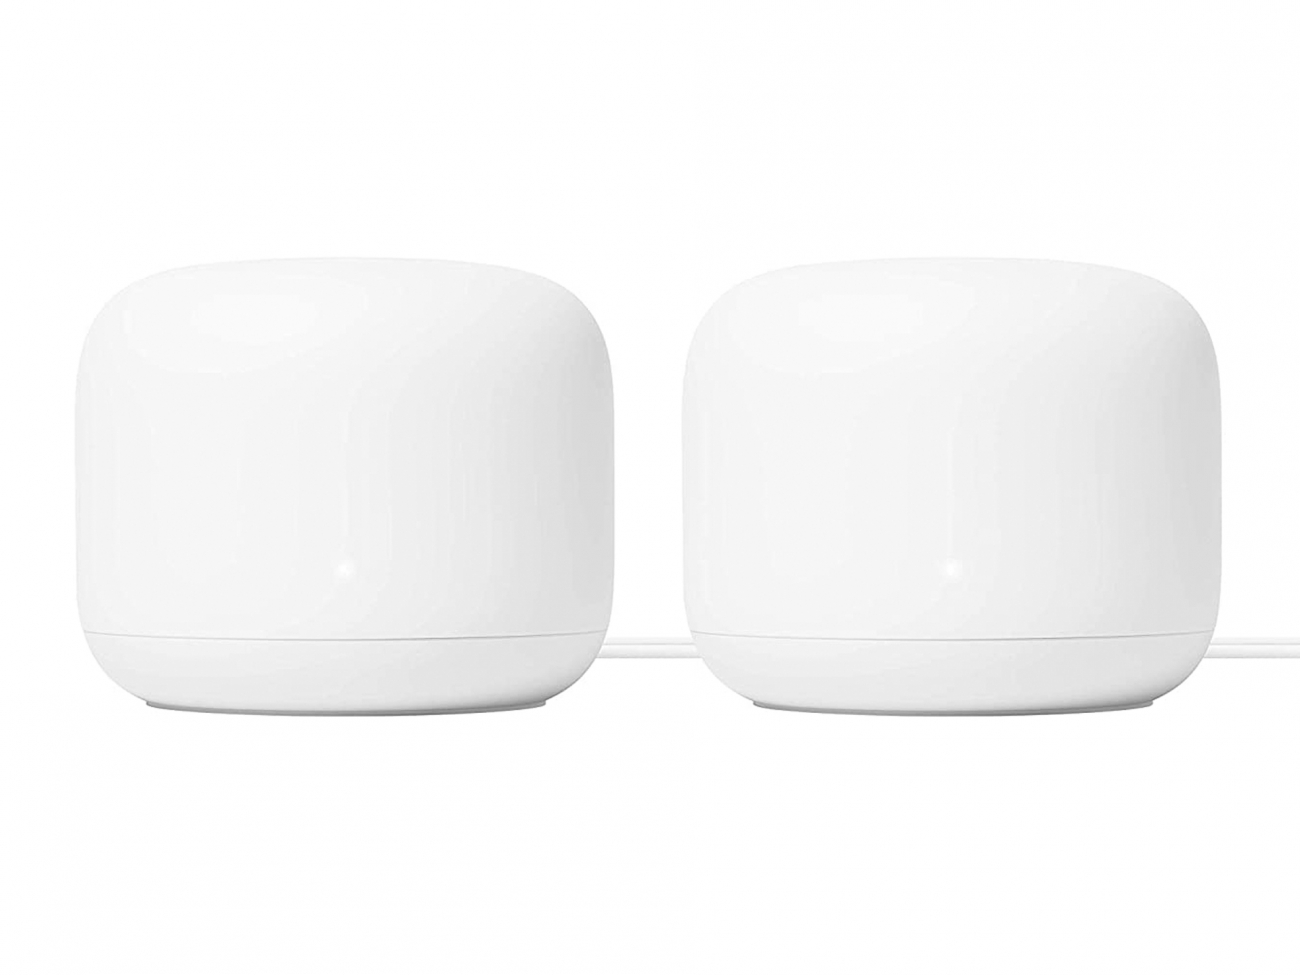 Google Nest Wi-Fi Router. Wi-Fi роутер: 2-Pack